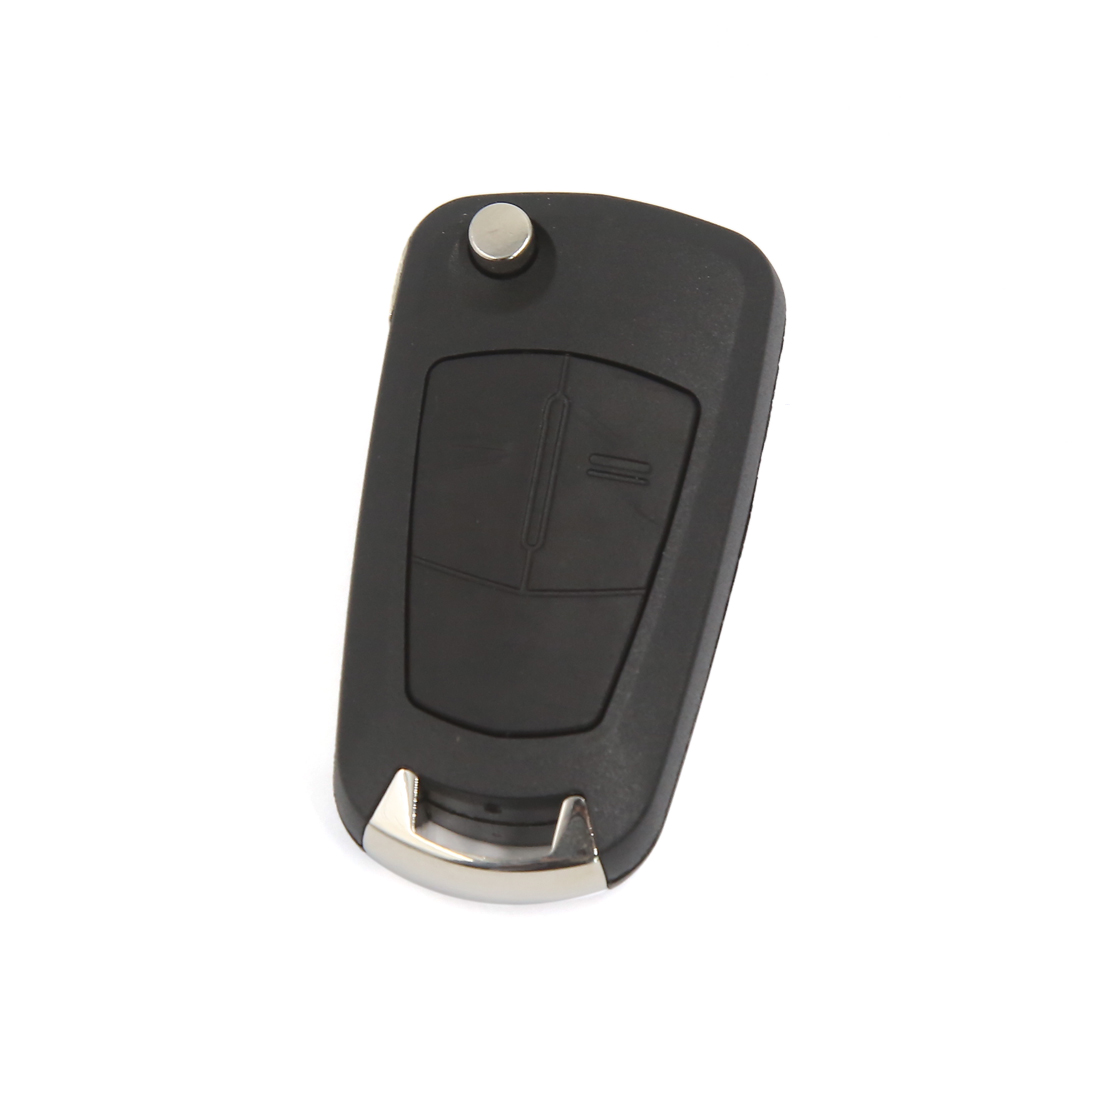 2 Button Remote Flip Key Fob Case Fits Vauxhall Opel Corsa Astra Vectra Zafira